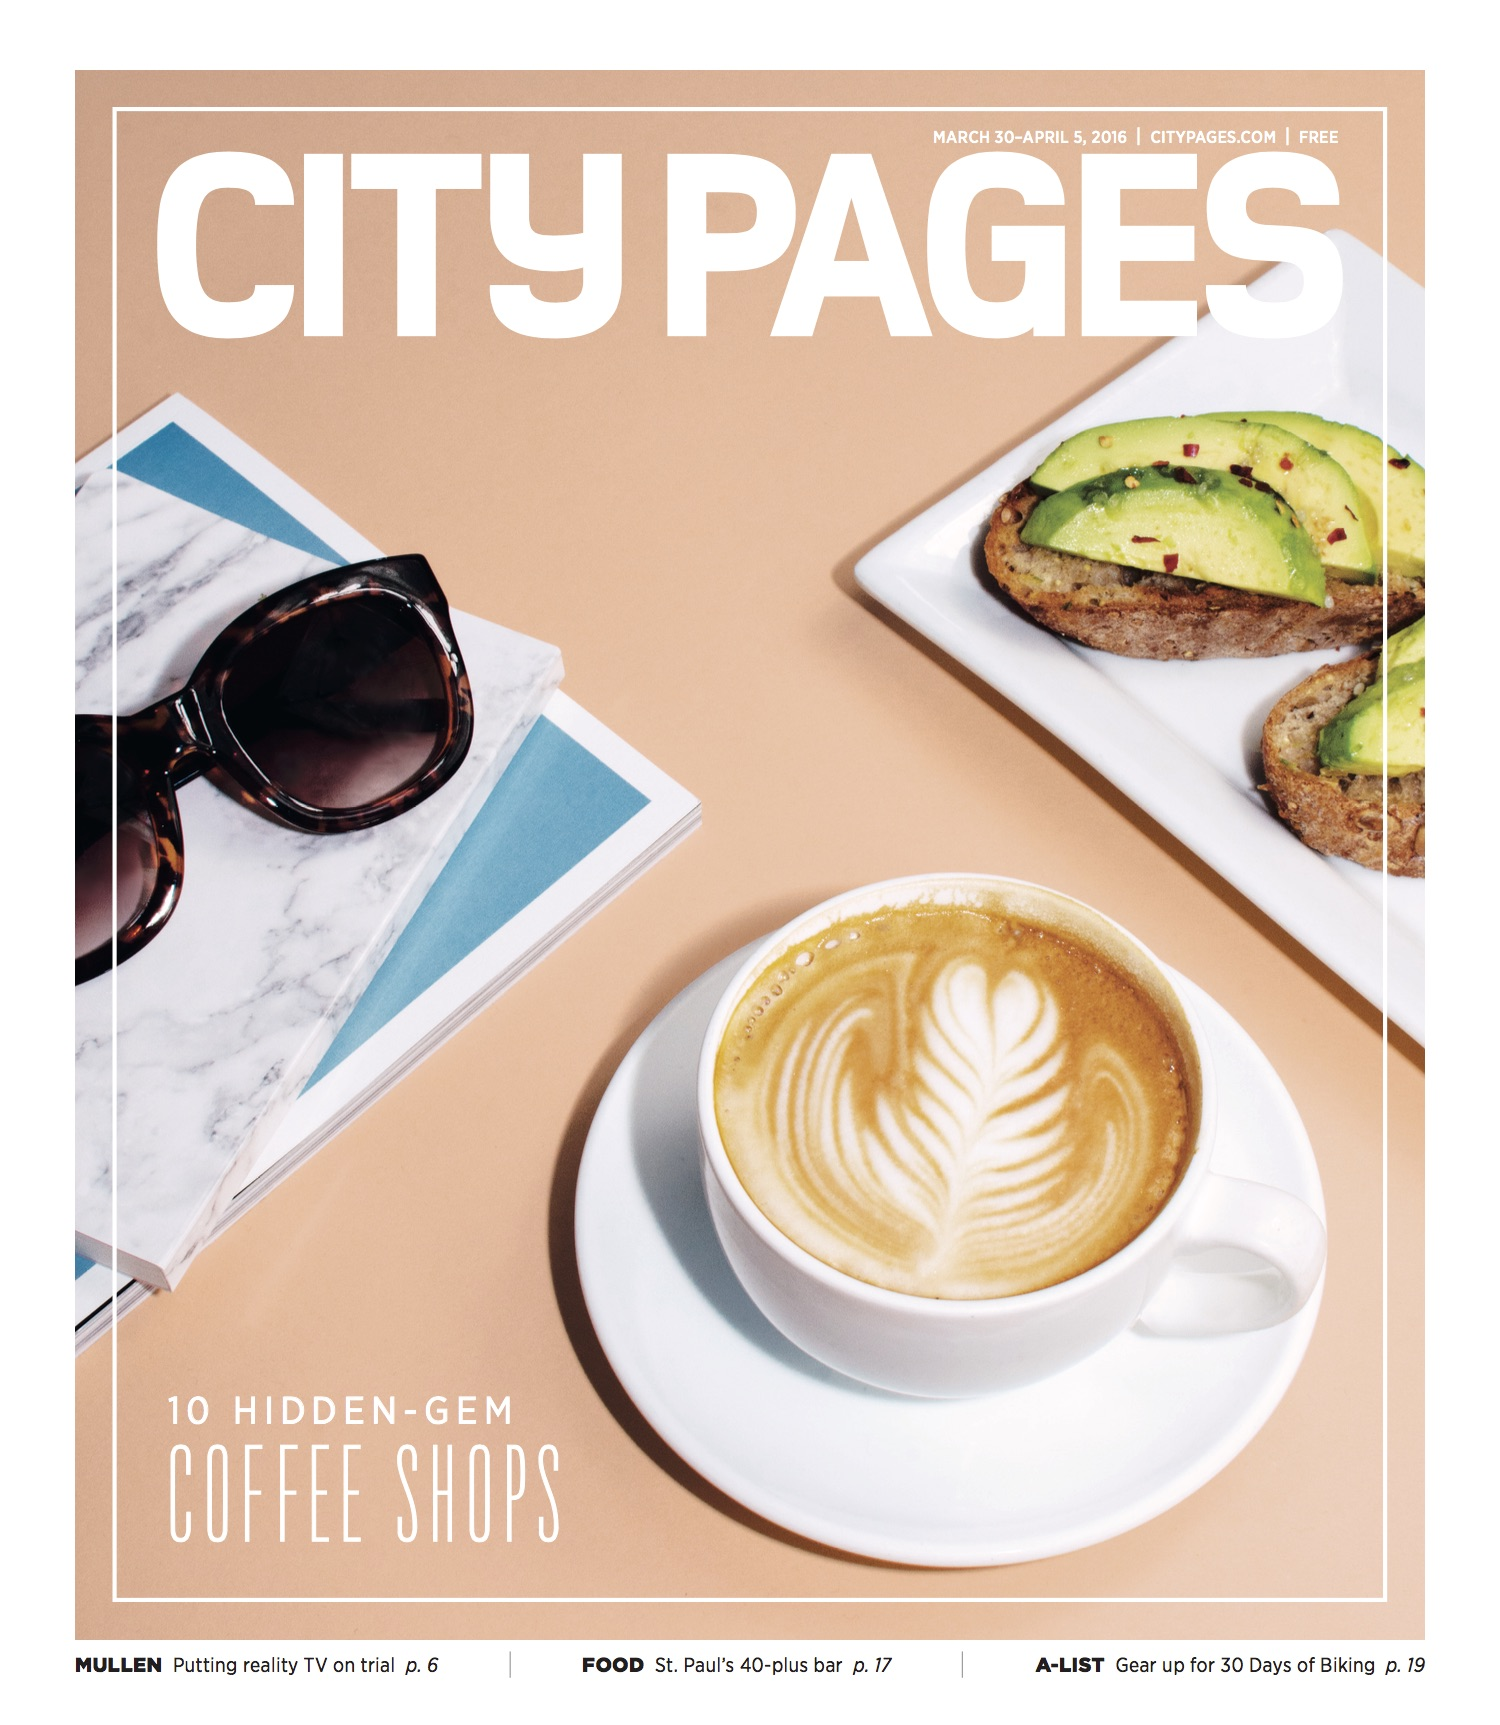 City Pages - March 2016 Cover Story